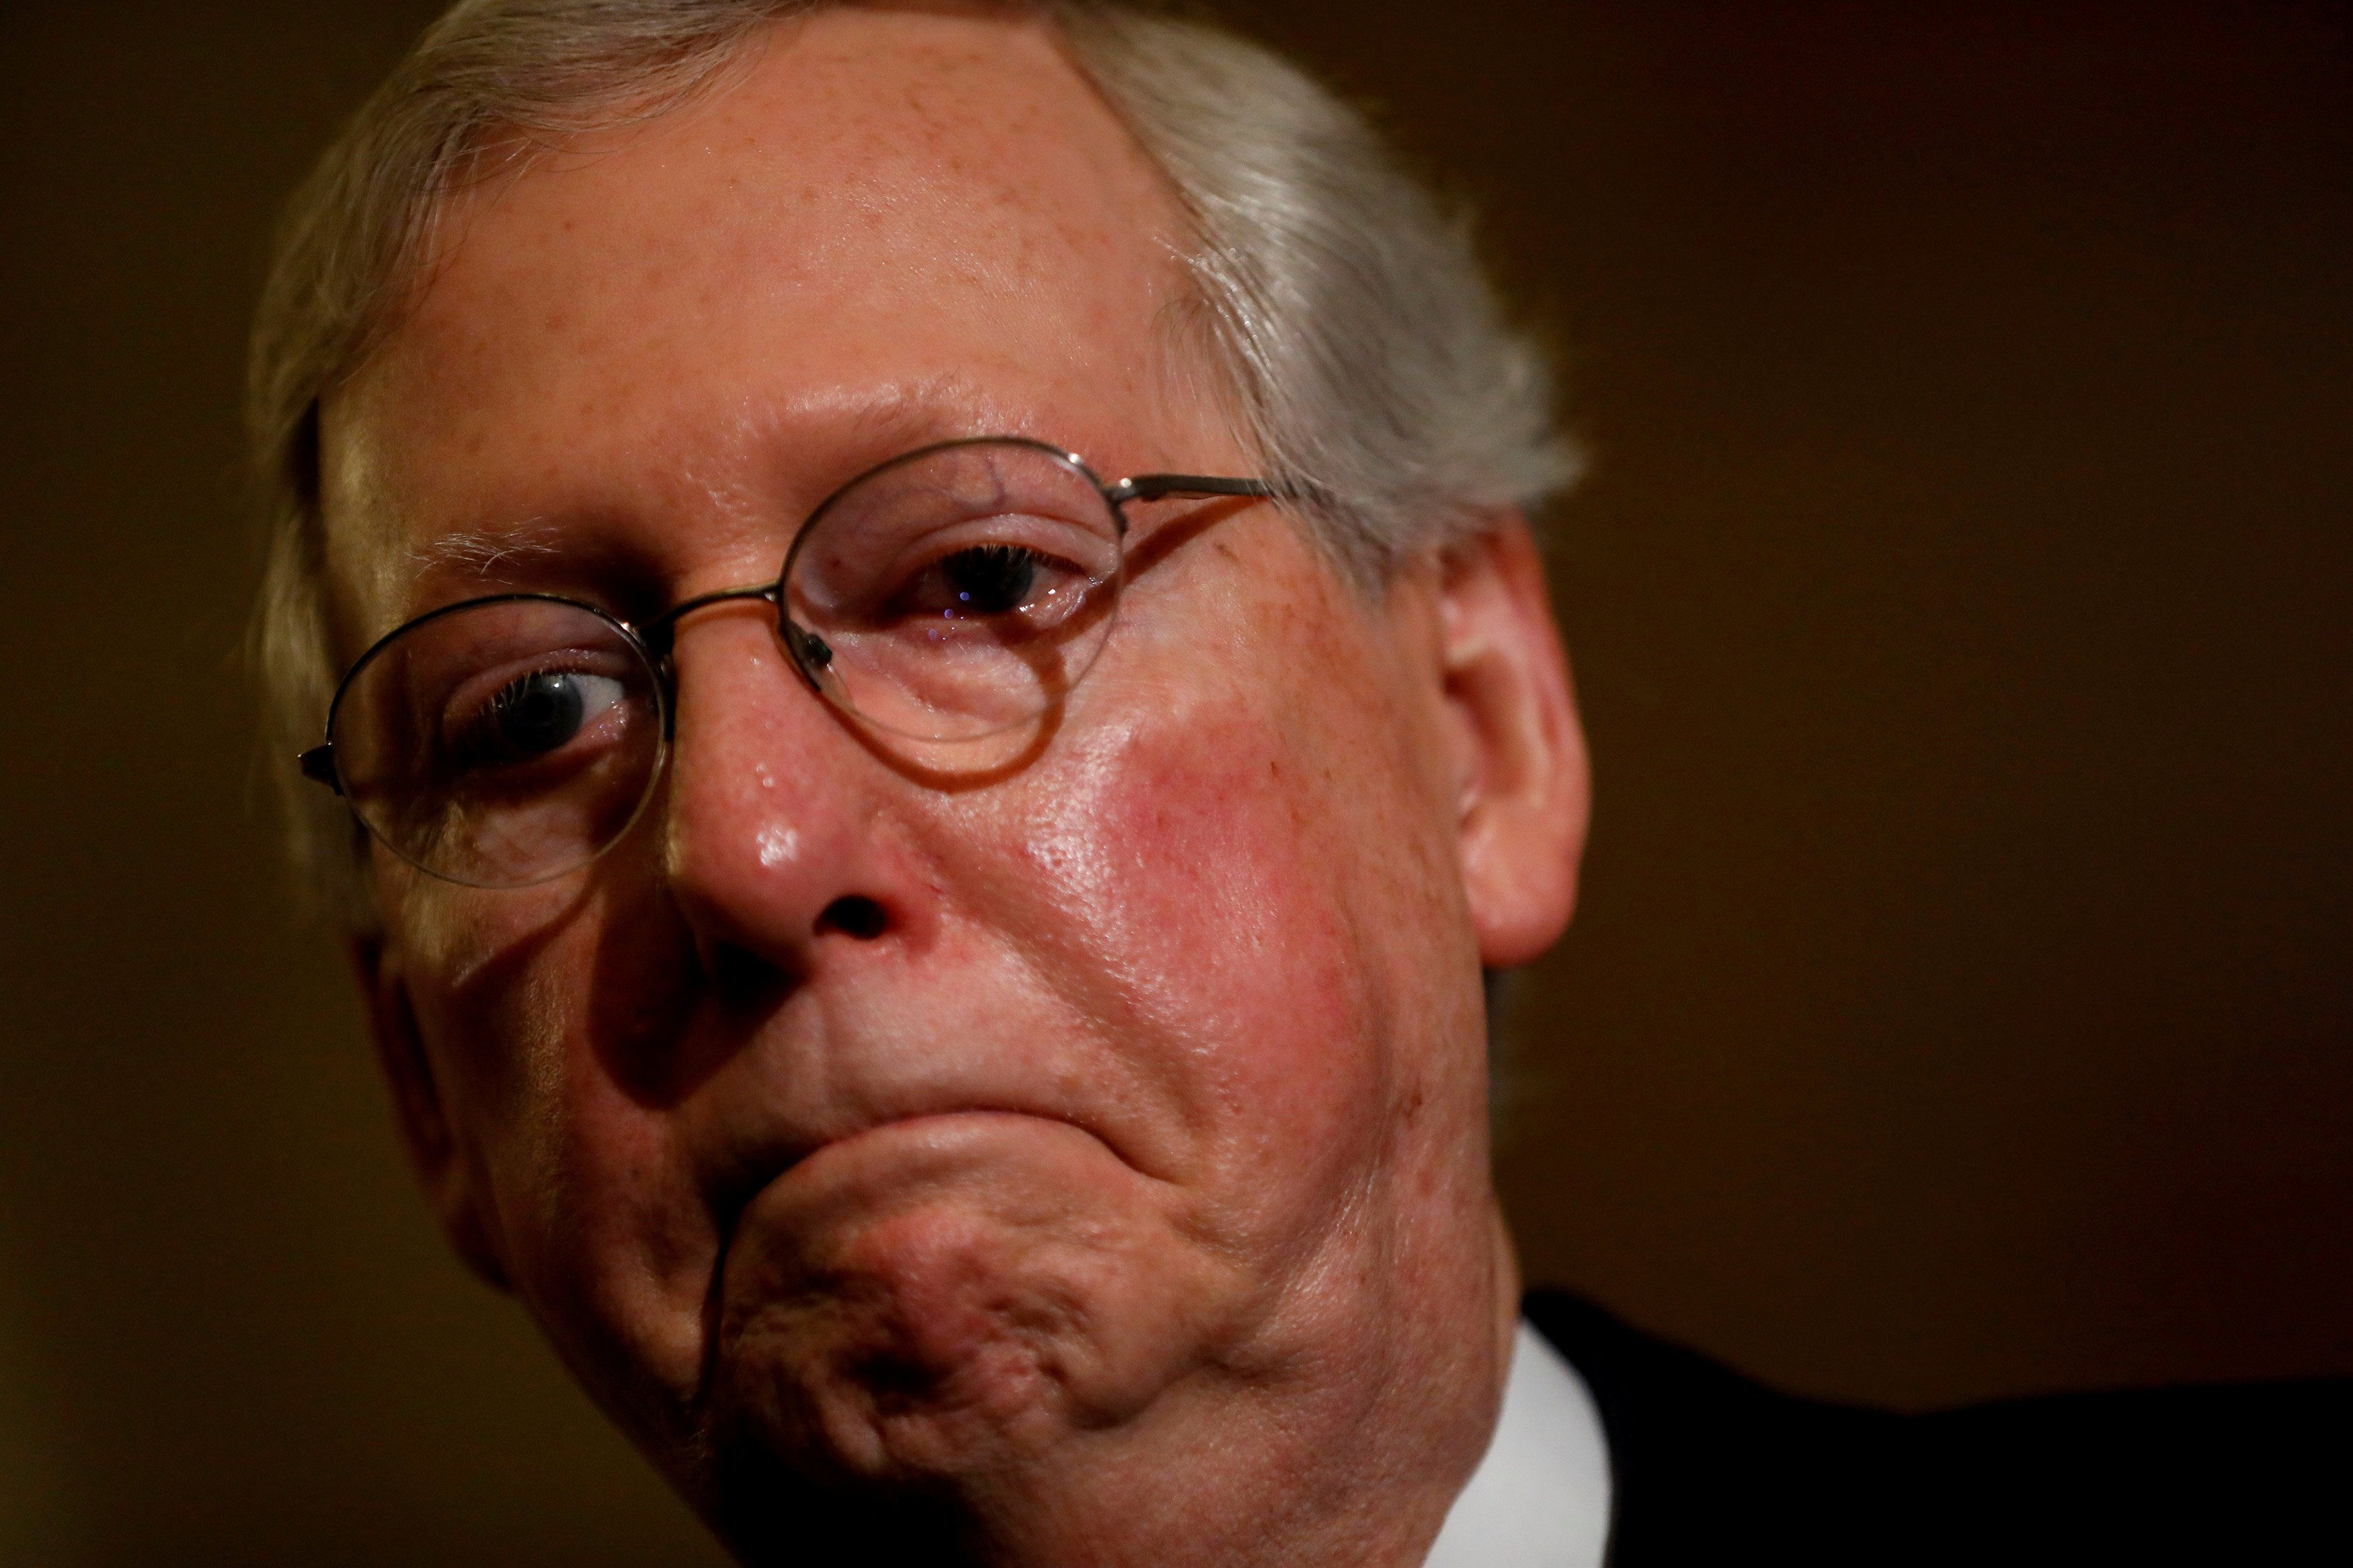 Senate Majority Leader Mitch McConnell speaks with reporters following the successful vote to open debate on a health care bill on Capitol Hill in Washington, U.S., July 25, 2017. REUTERS/Aaron P. Bernstein     TPX IMAGES OF THE DAY